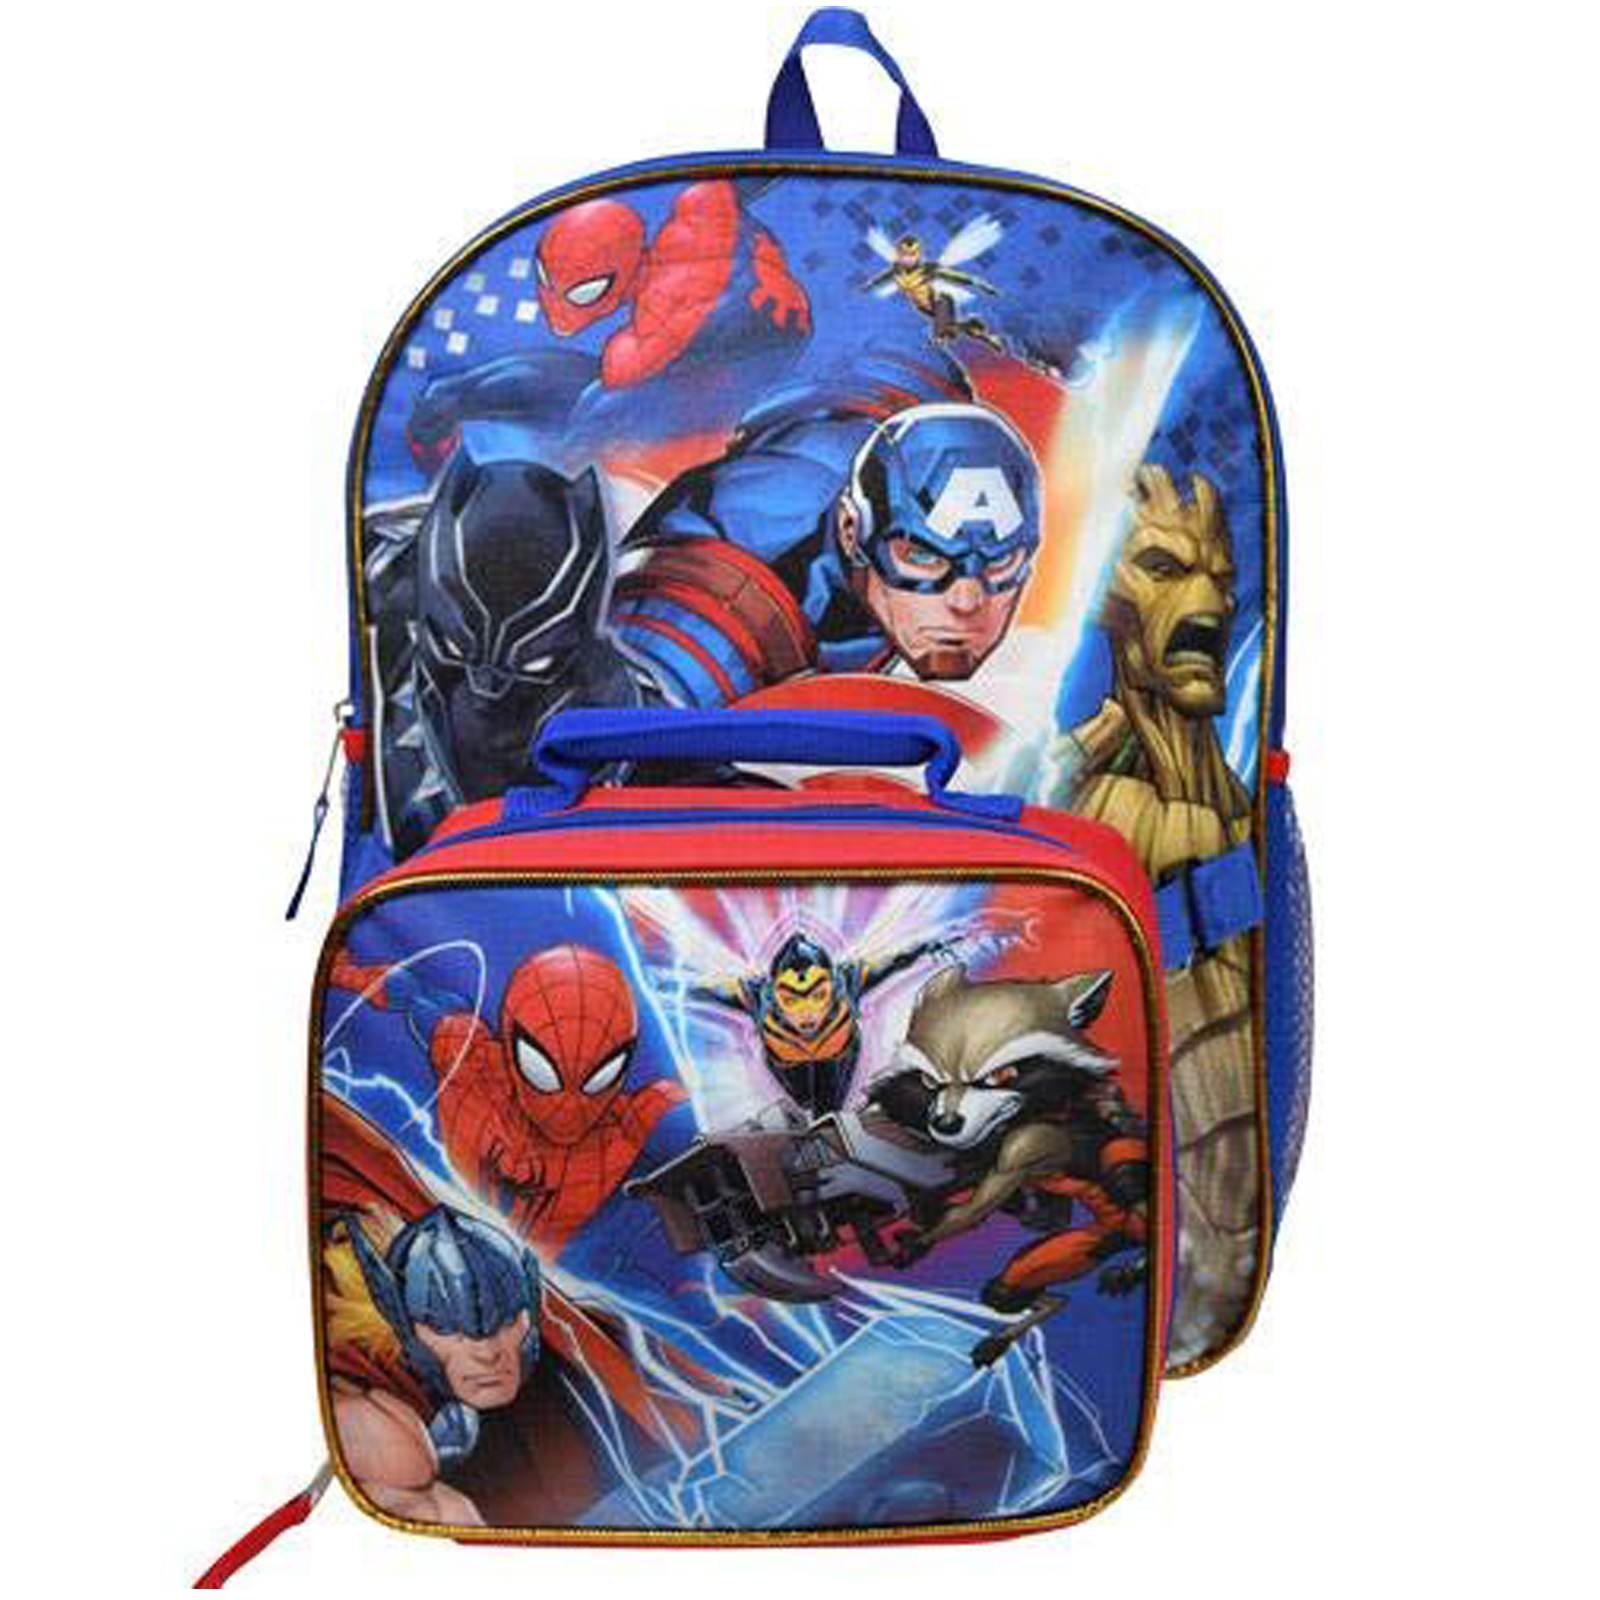 cdfac563fad Marvel Avengers Kids School Backpack with Lunch Bag Set Boys Travel Tote